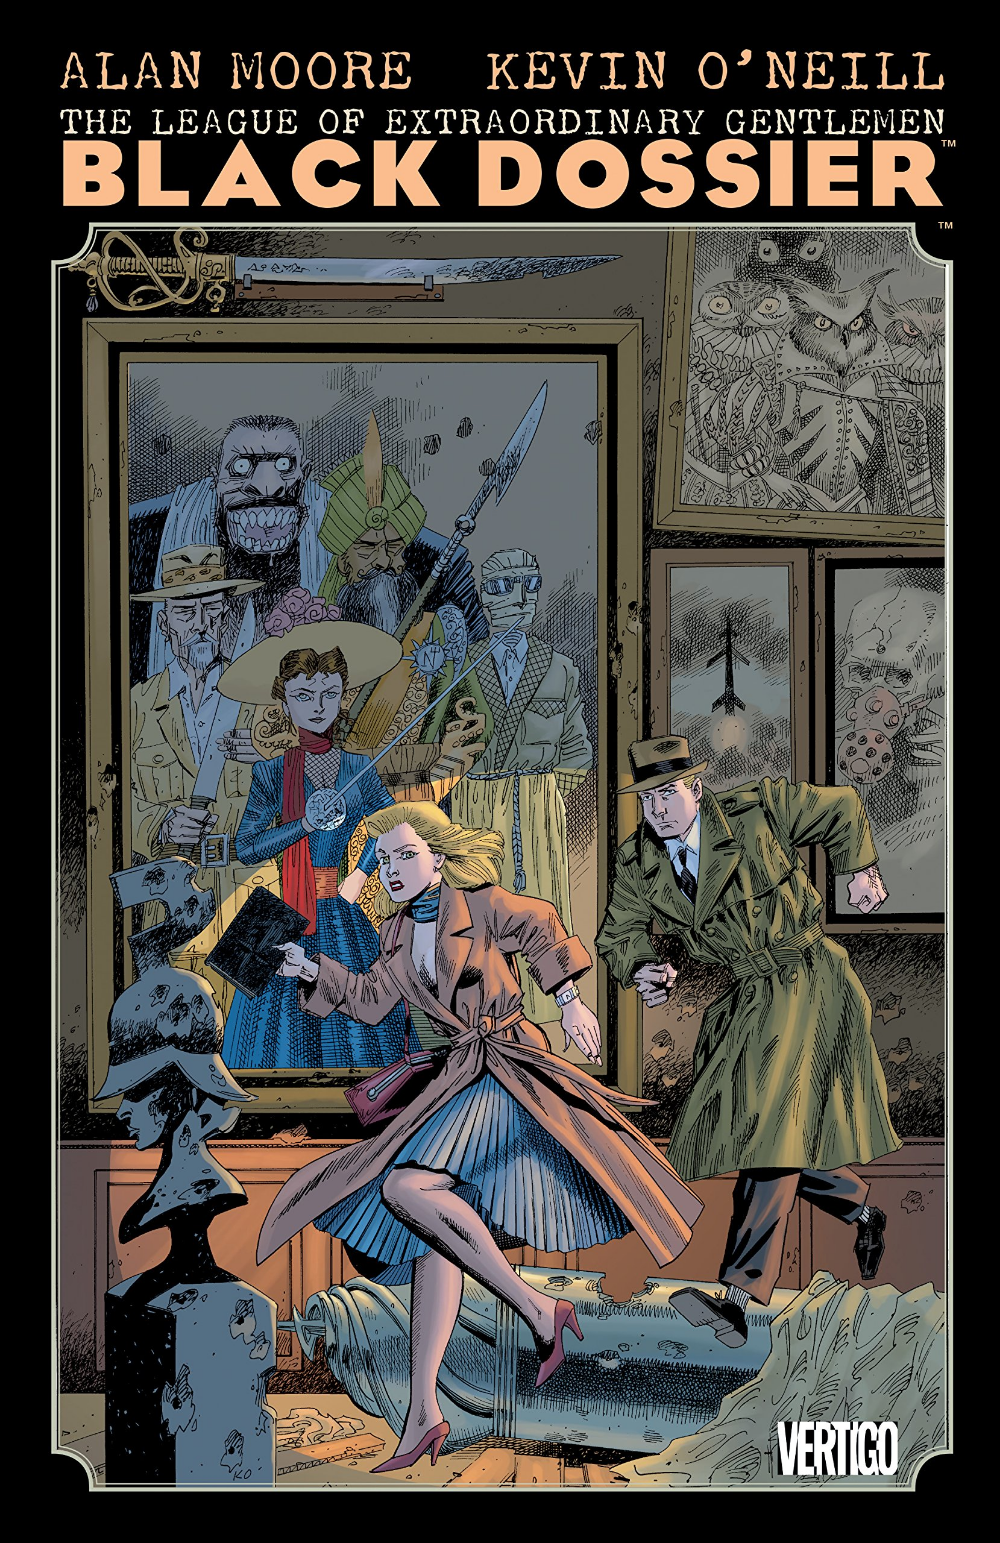 League of Extraordinary Gentlemen: The Black Dossier (The League of Extraordinary Gentlemen)